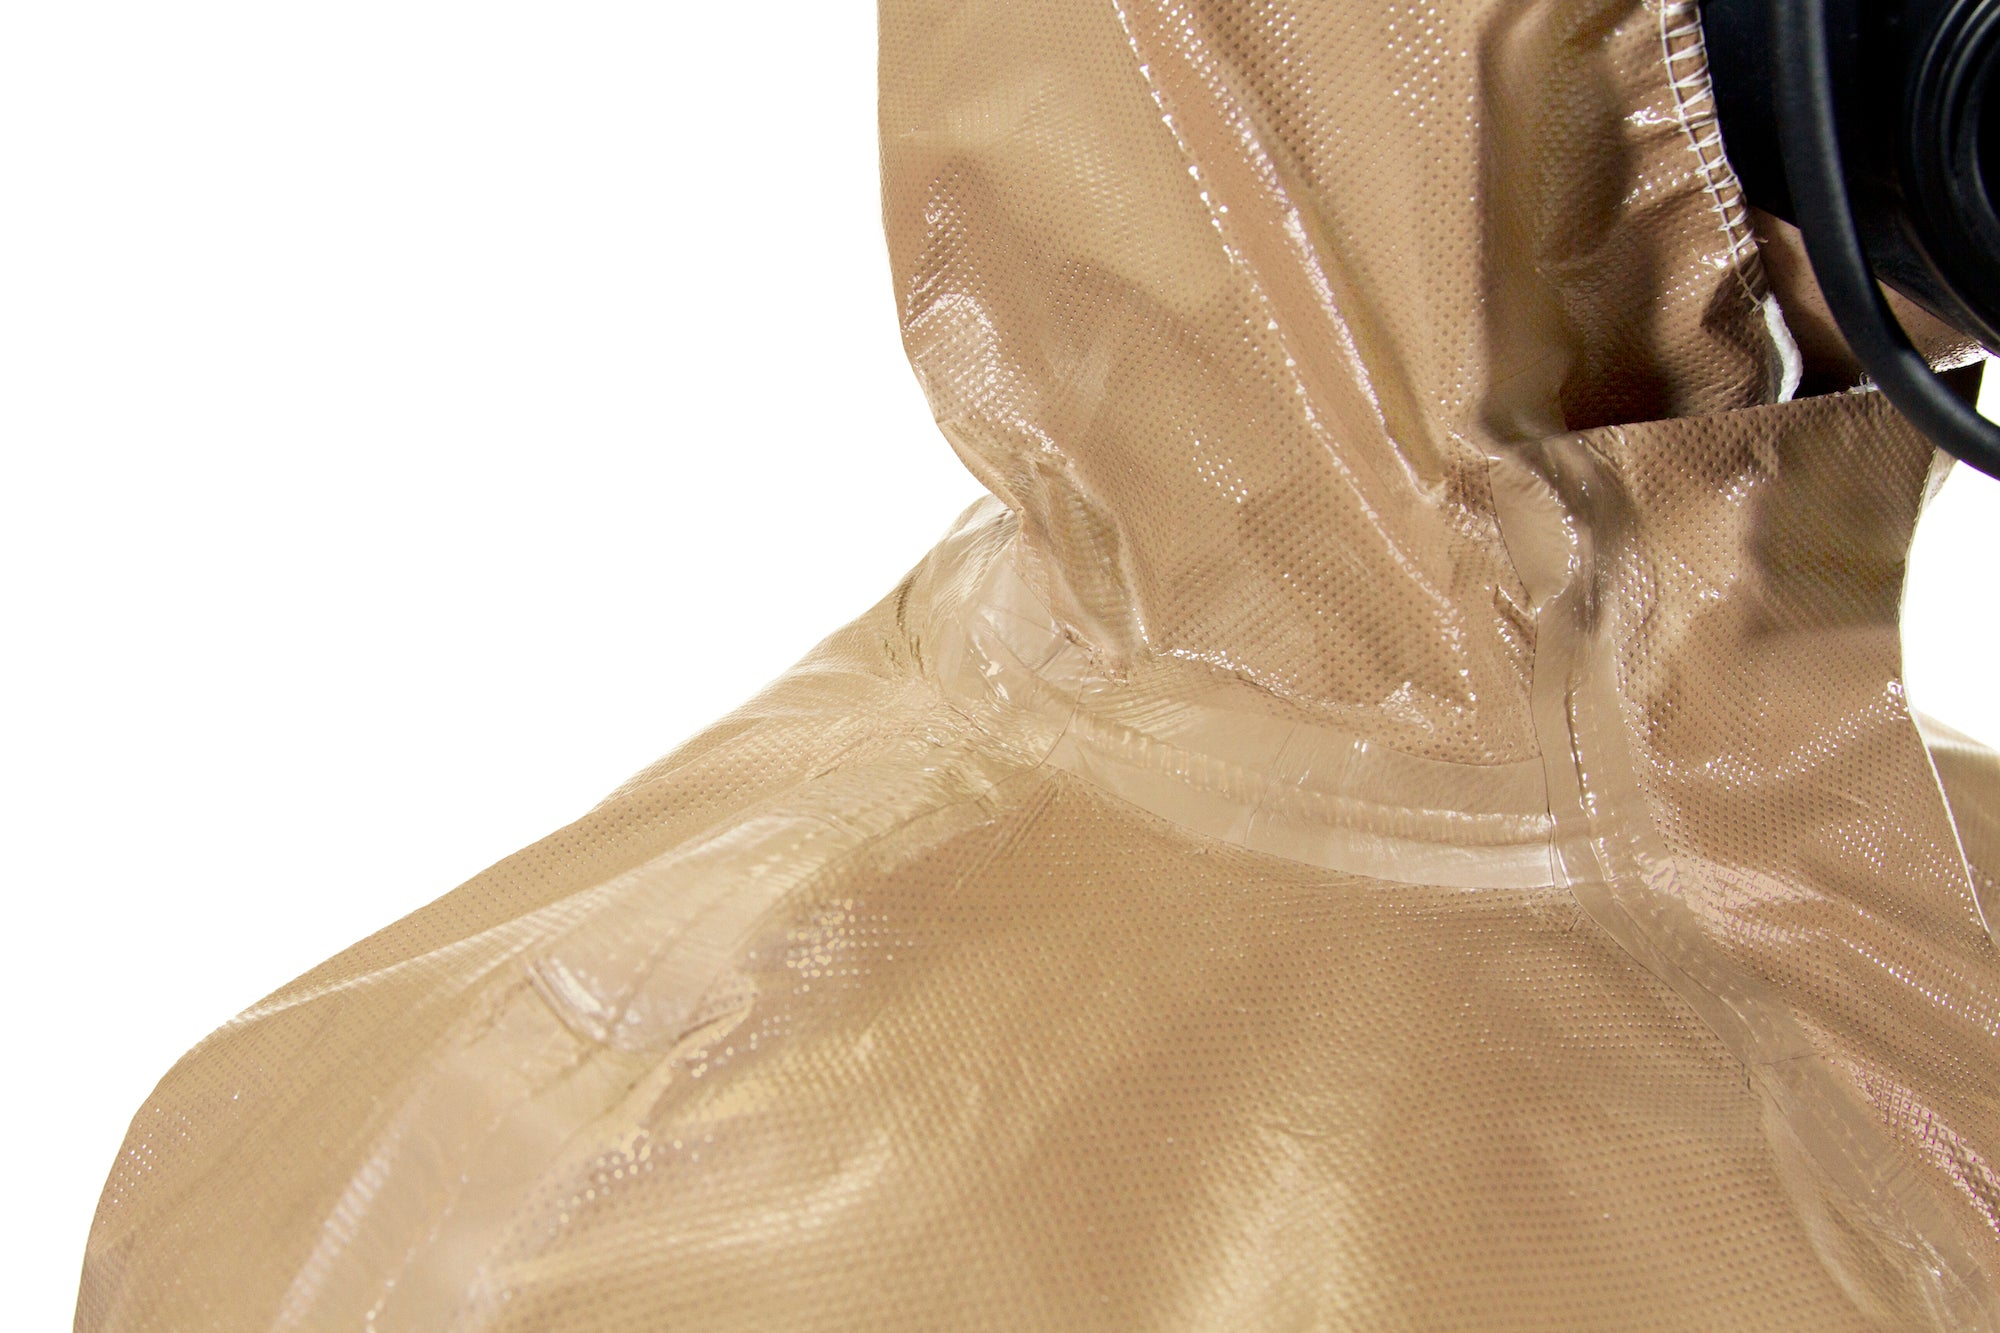 Closeup of the seams on a HAZ-SUIT HAZMAT Suit